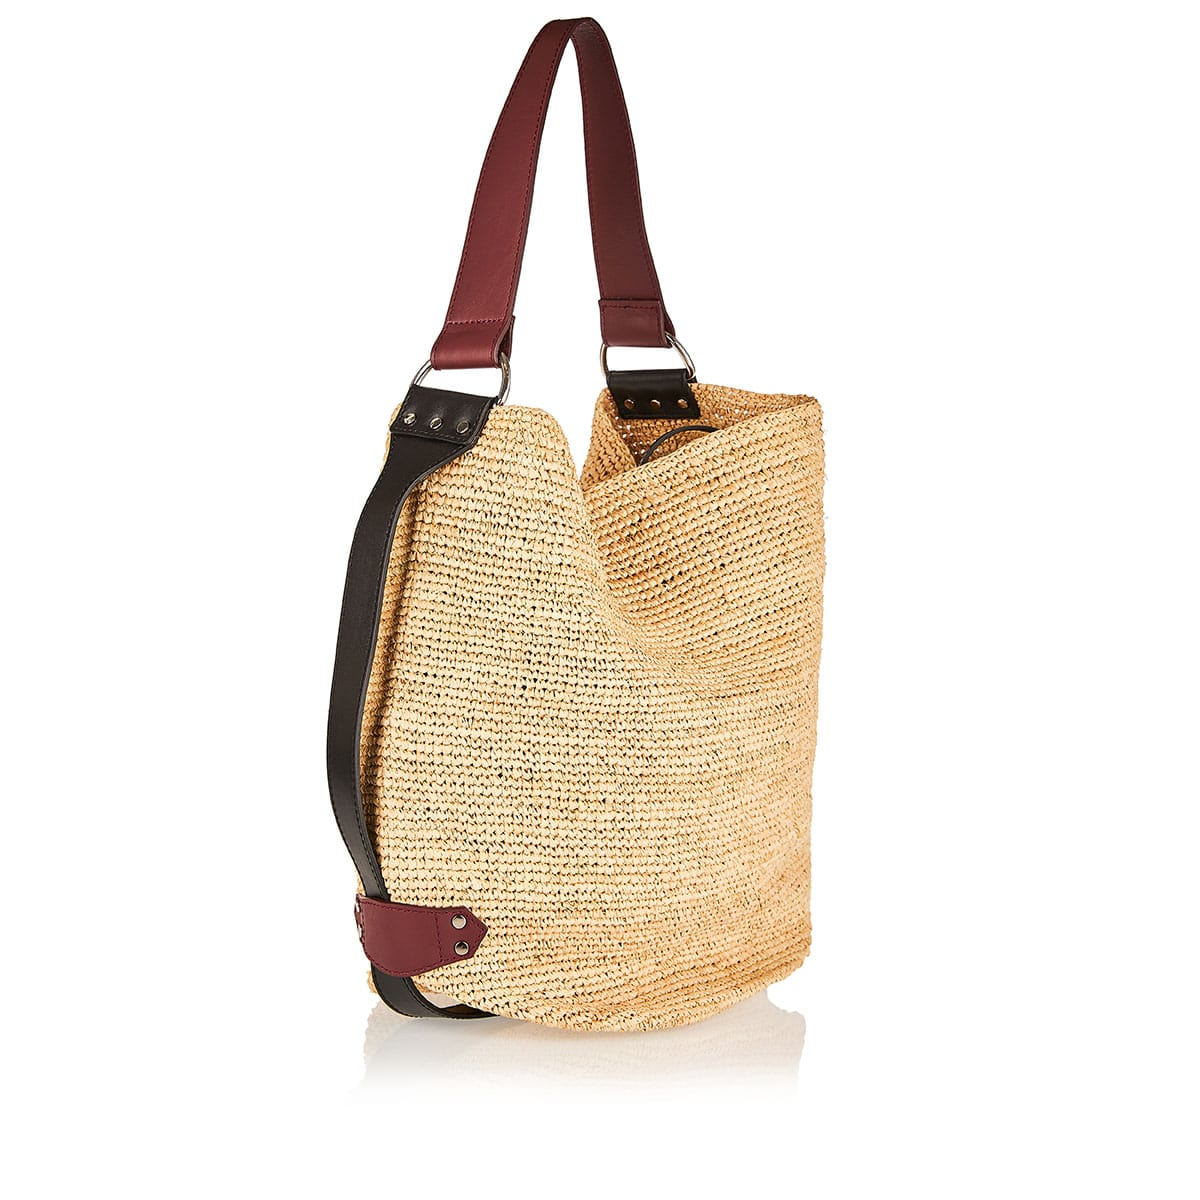 Bayia medium straw and leather bag